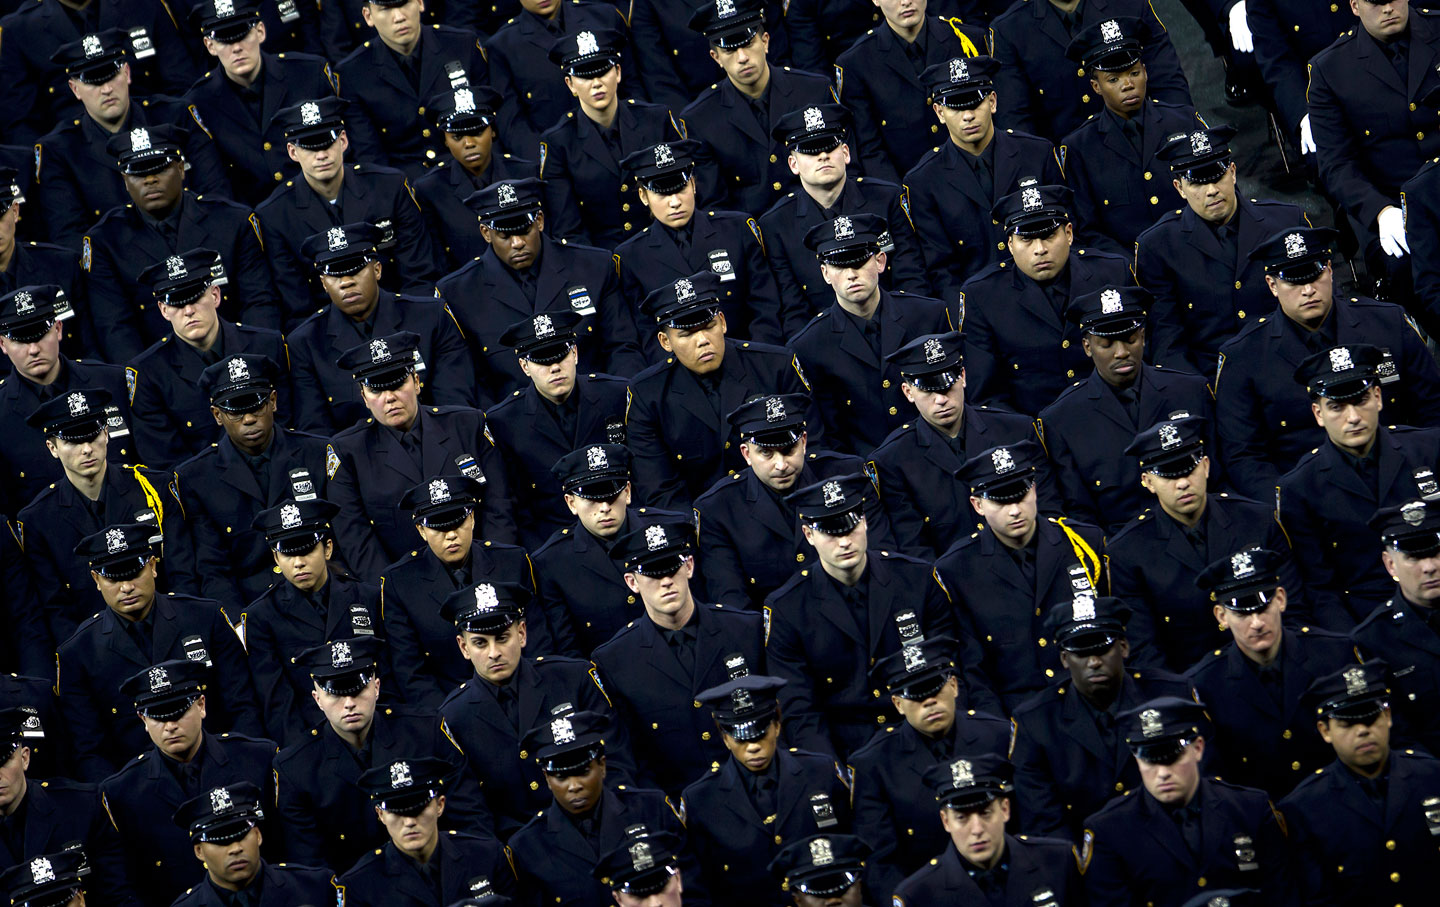 New York City Police Academy